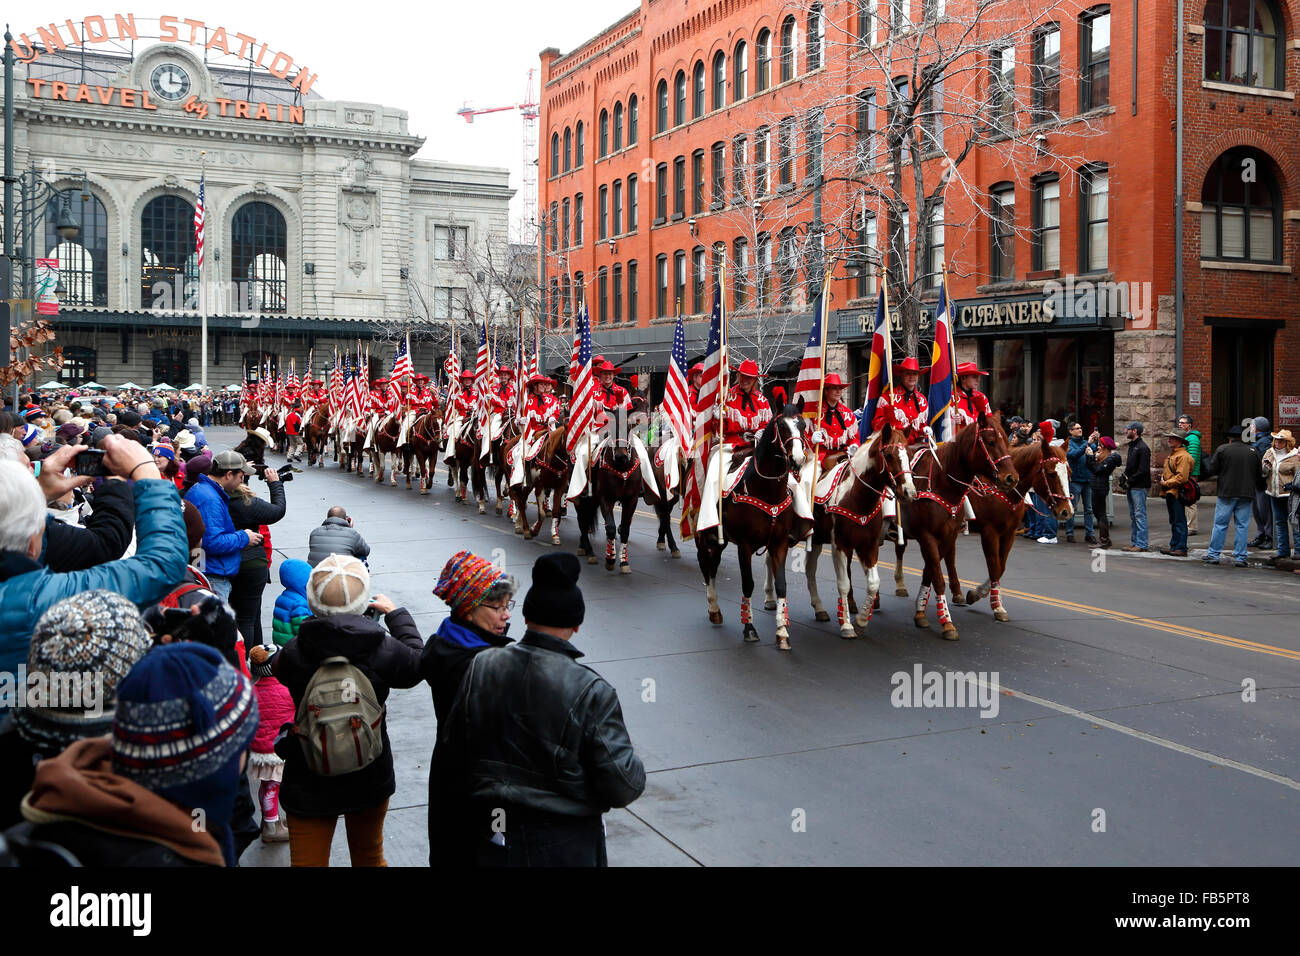 Red Division Westernaires carrying American flags, National Western Stock Show Kick-Off Parade, Denver, Colorado - Stock Image